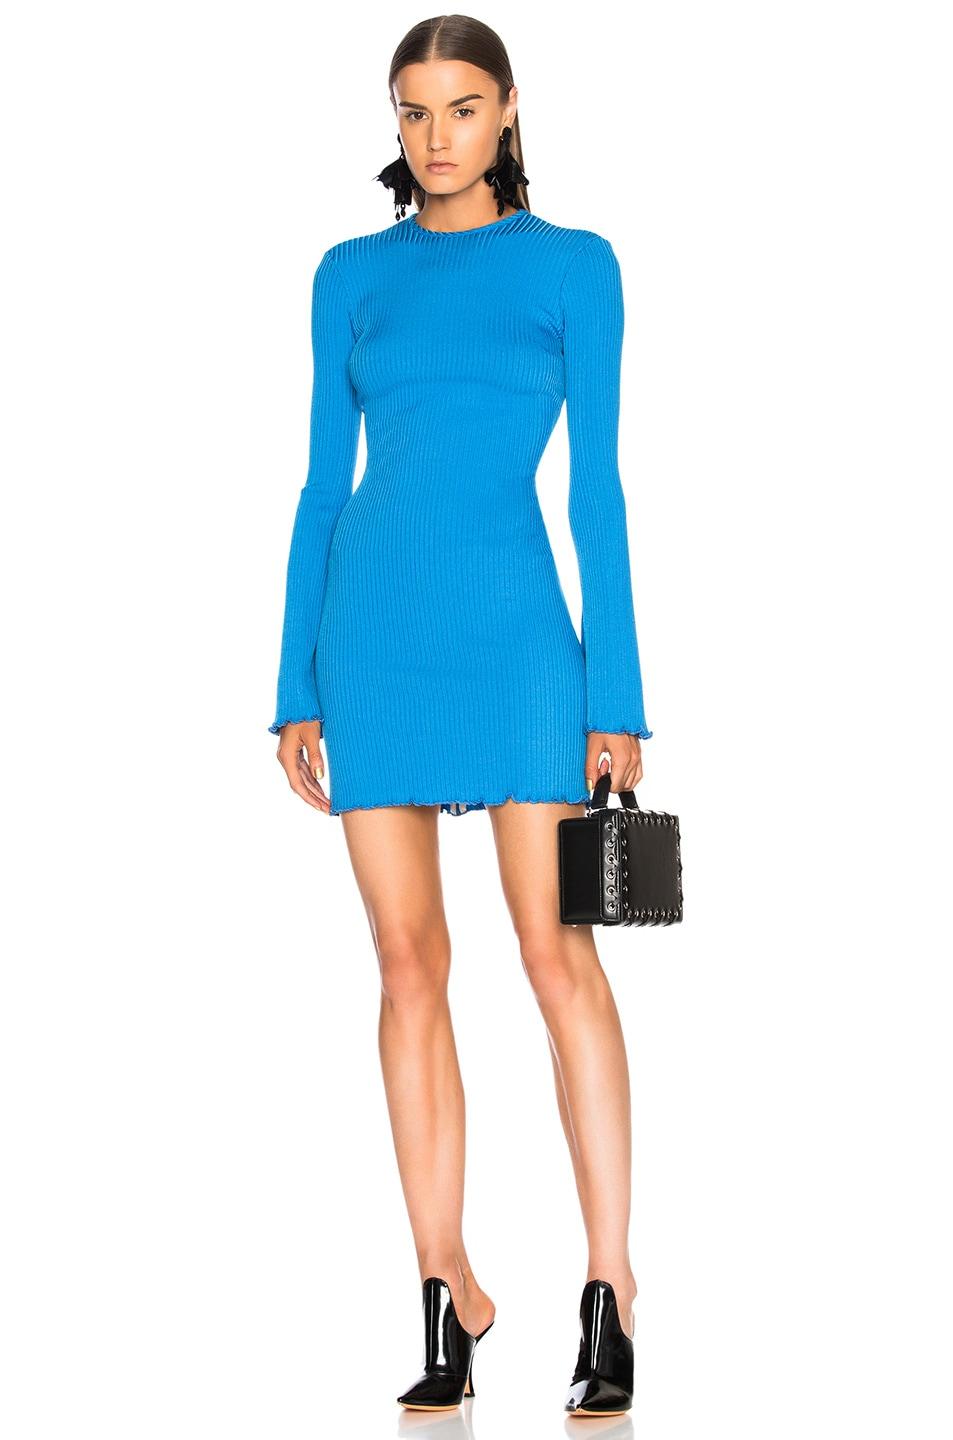 Ellery  ELLERY SUNSHINE KID MINI DRESS IN BLUE